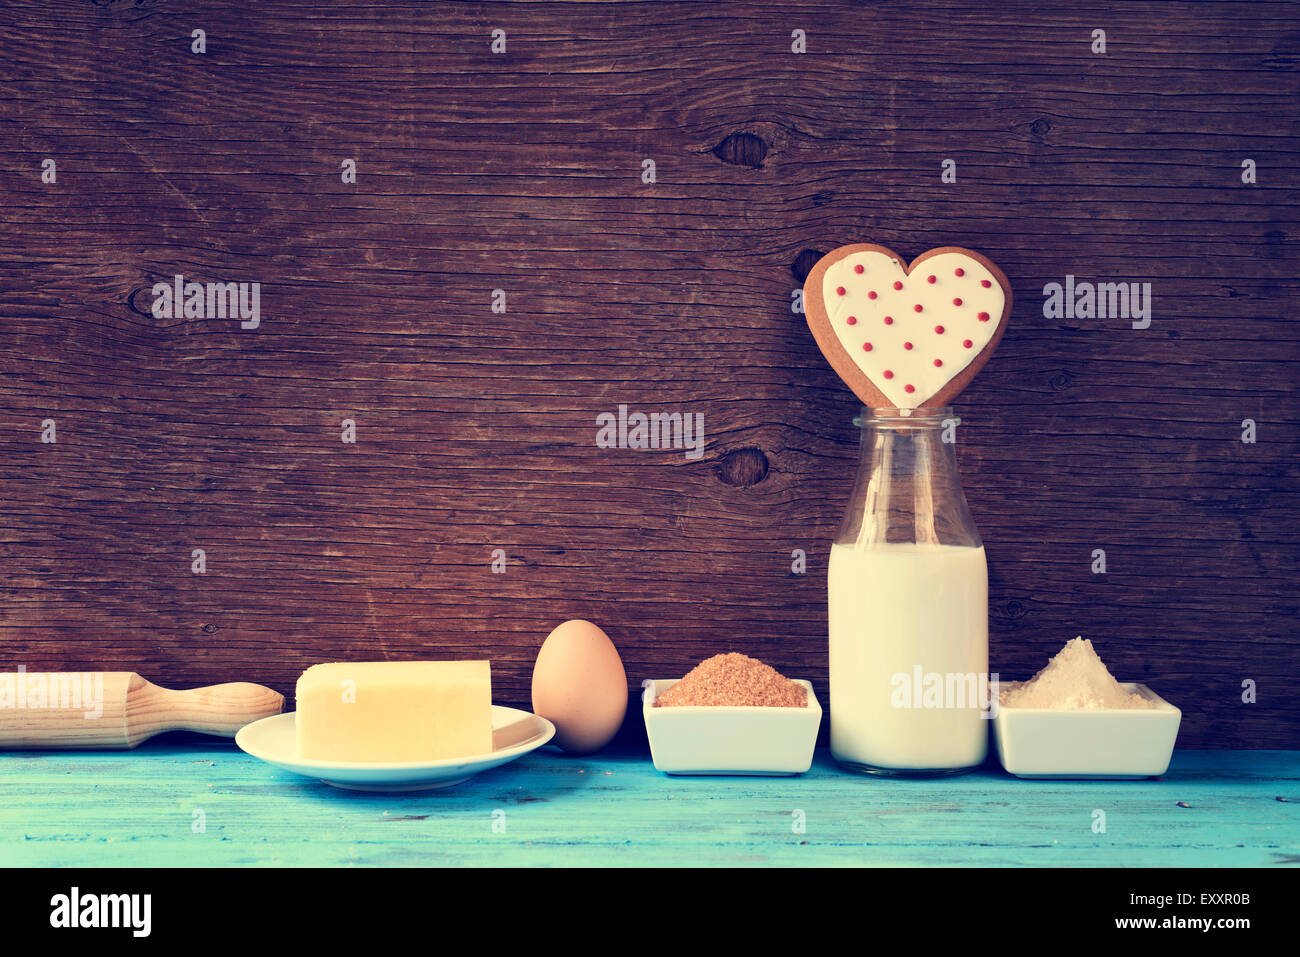 a heart-shaped cookie and the ingredients for cook it, such as milk, eggs, flour, butter and sugar on a blue rustic - Stock Image